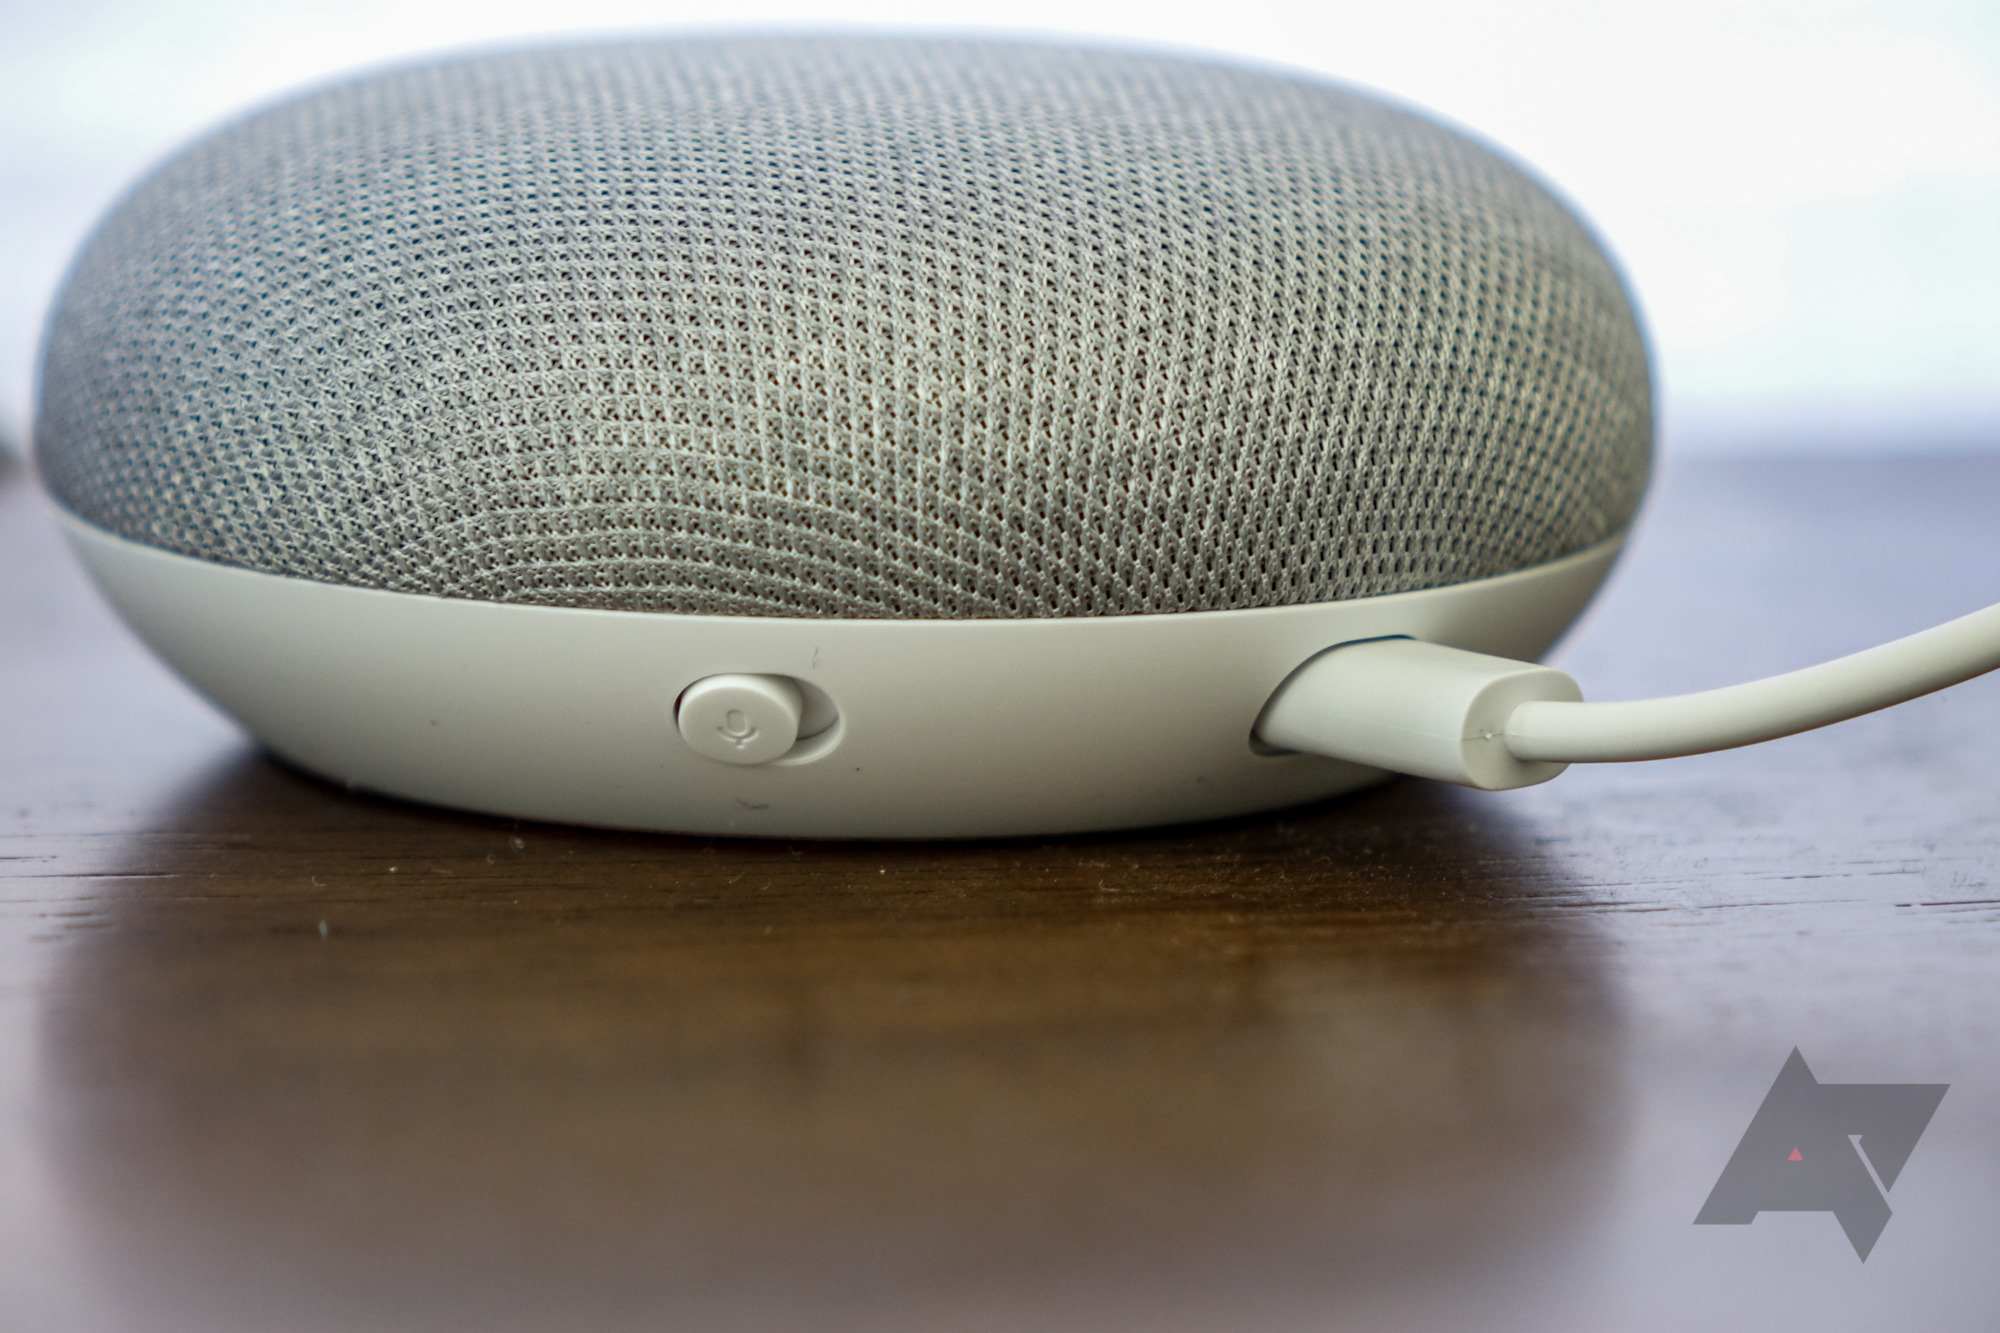 Google Nest Mini leaks: Headphone jack, wall mount